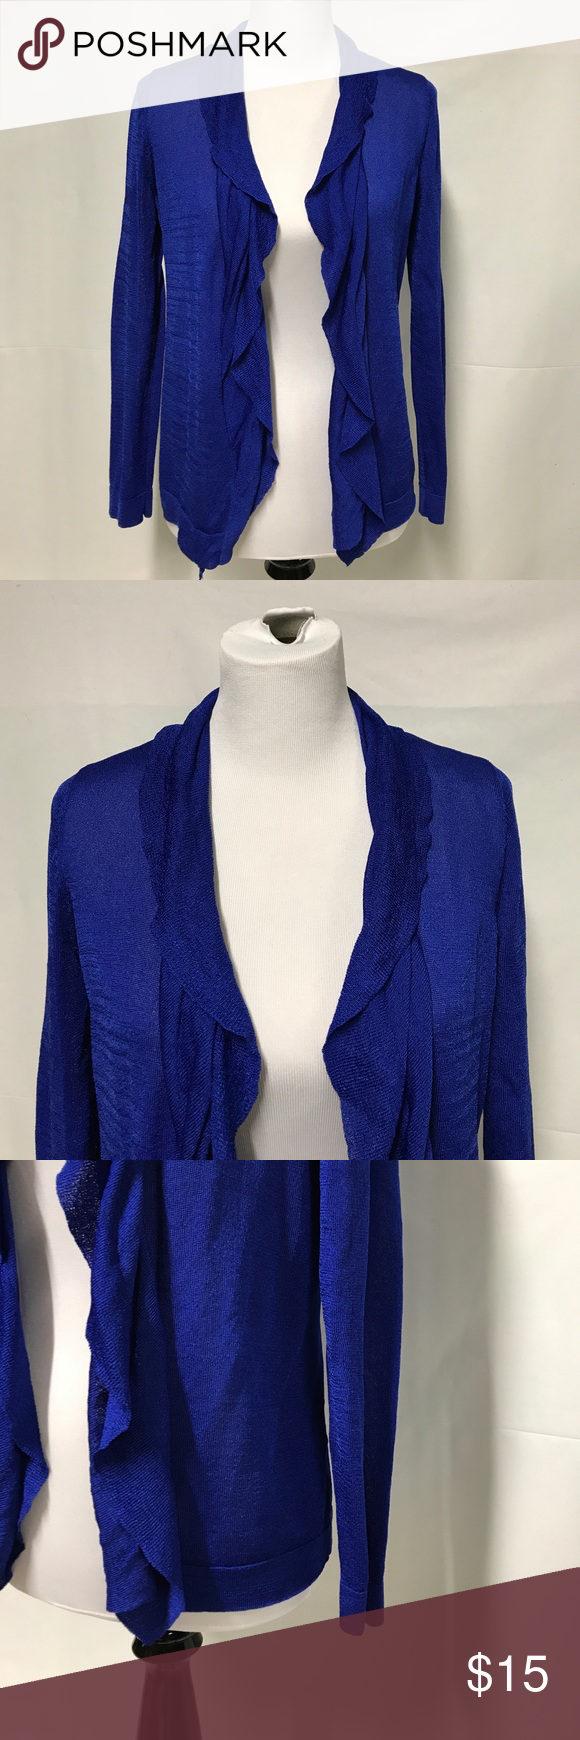 Jones new york royal blue cardigan | Royal blue cardigan, Mid ...